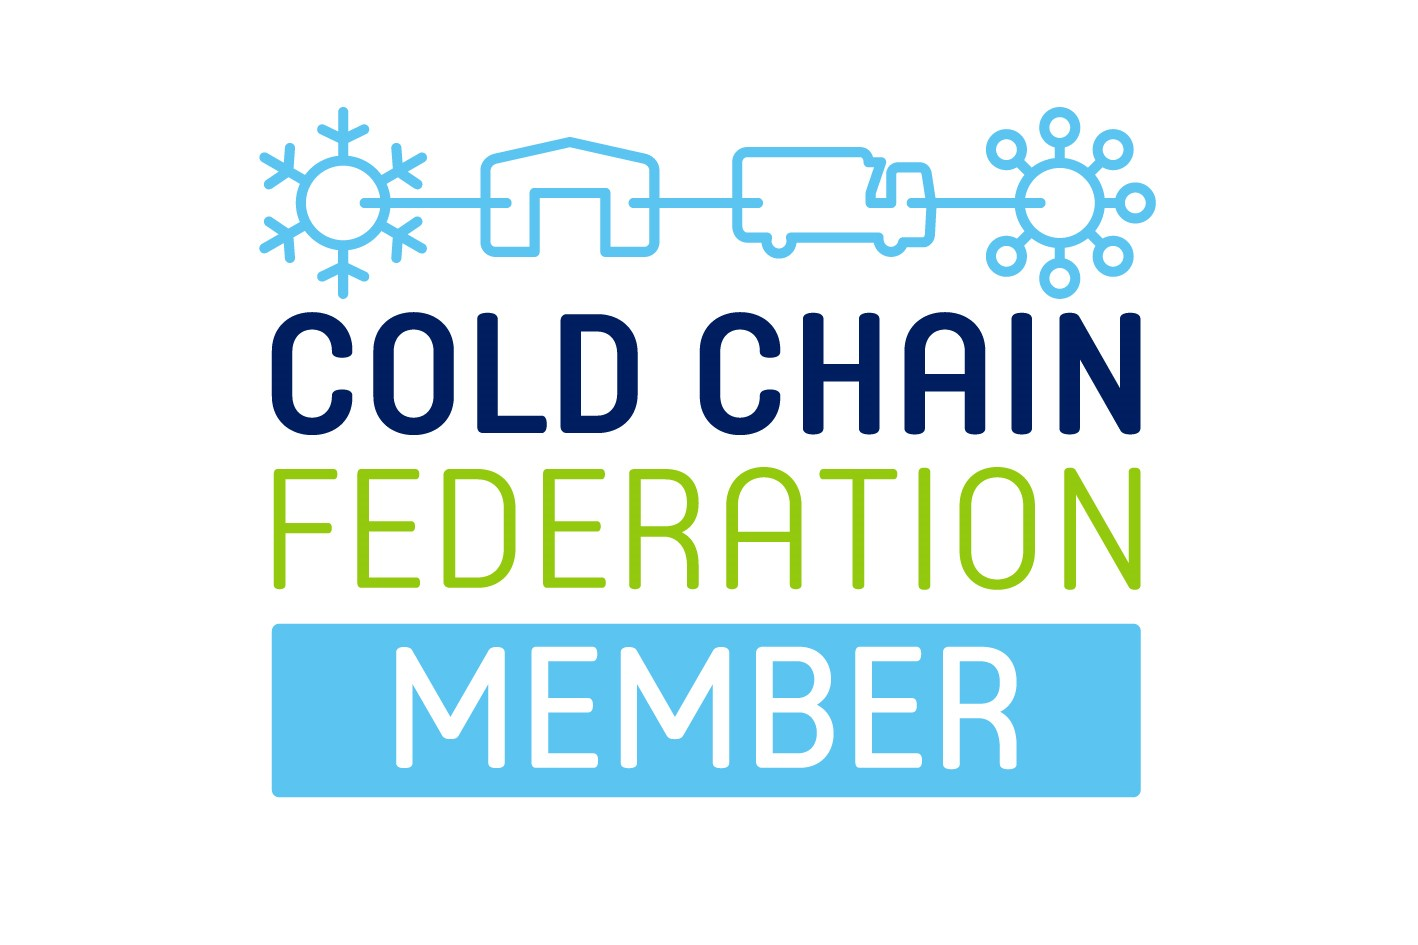 Cold Chain Federation Member Logo 1